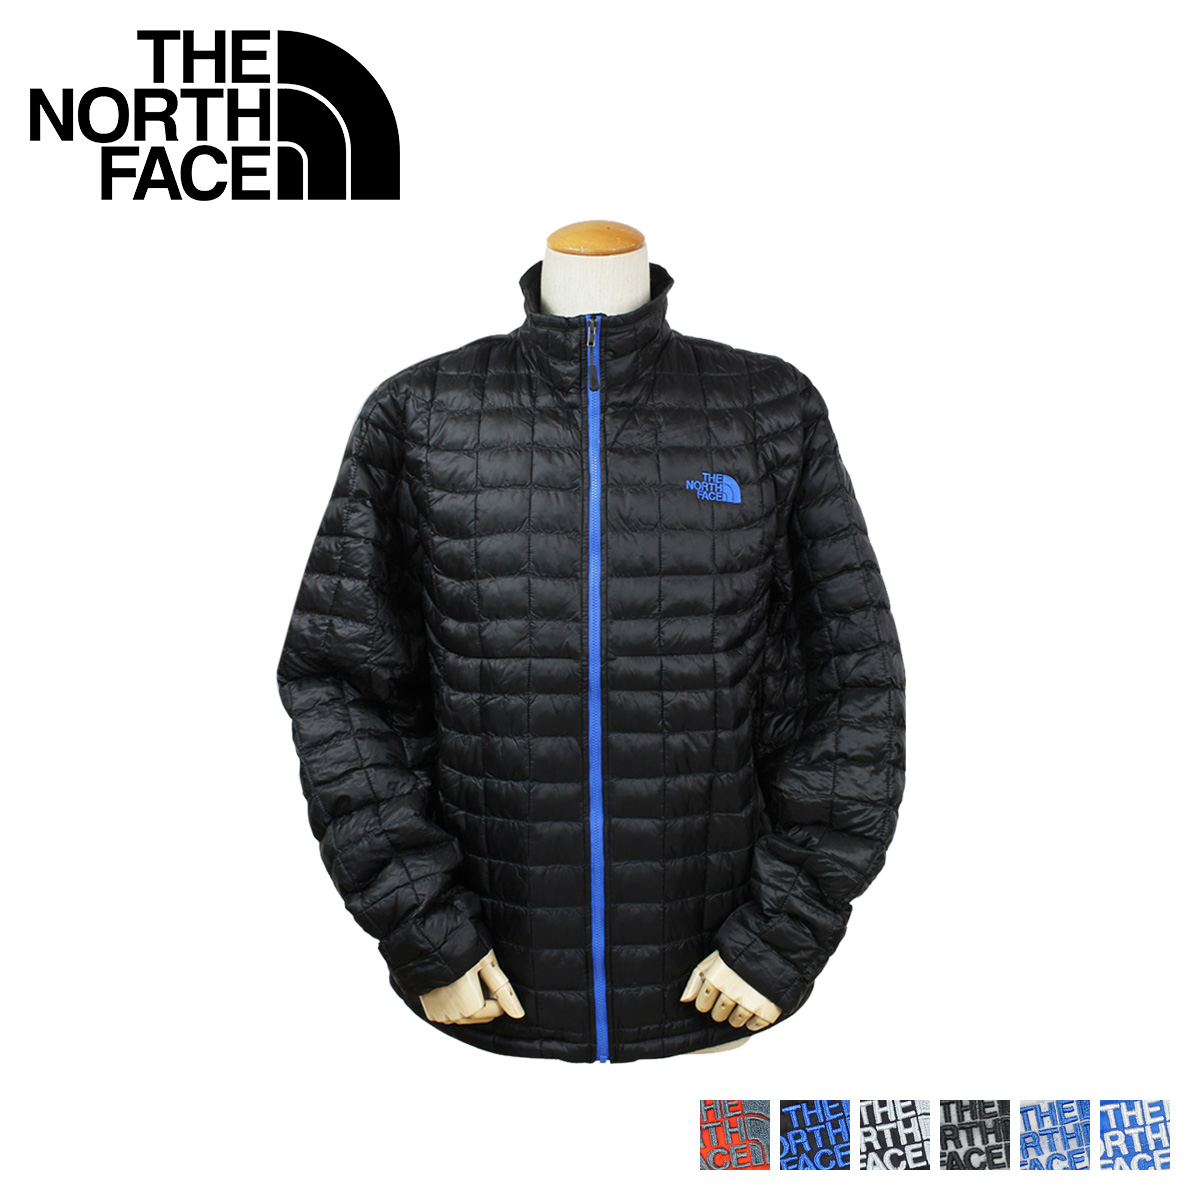 THE NORTH FACE ノースフェイス ジャケット MEN'S THERMOBALL FULL ZIP JACKET メンズ 【決算セール 返品不可】